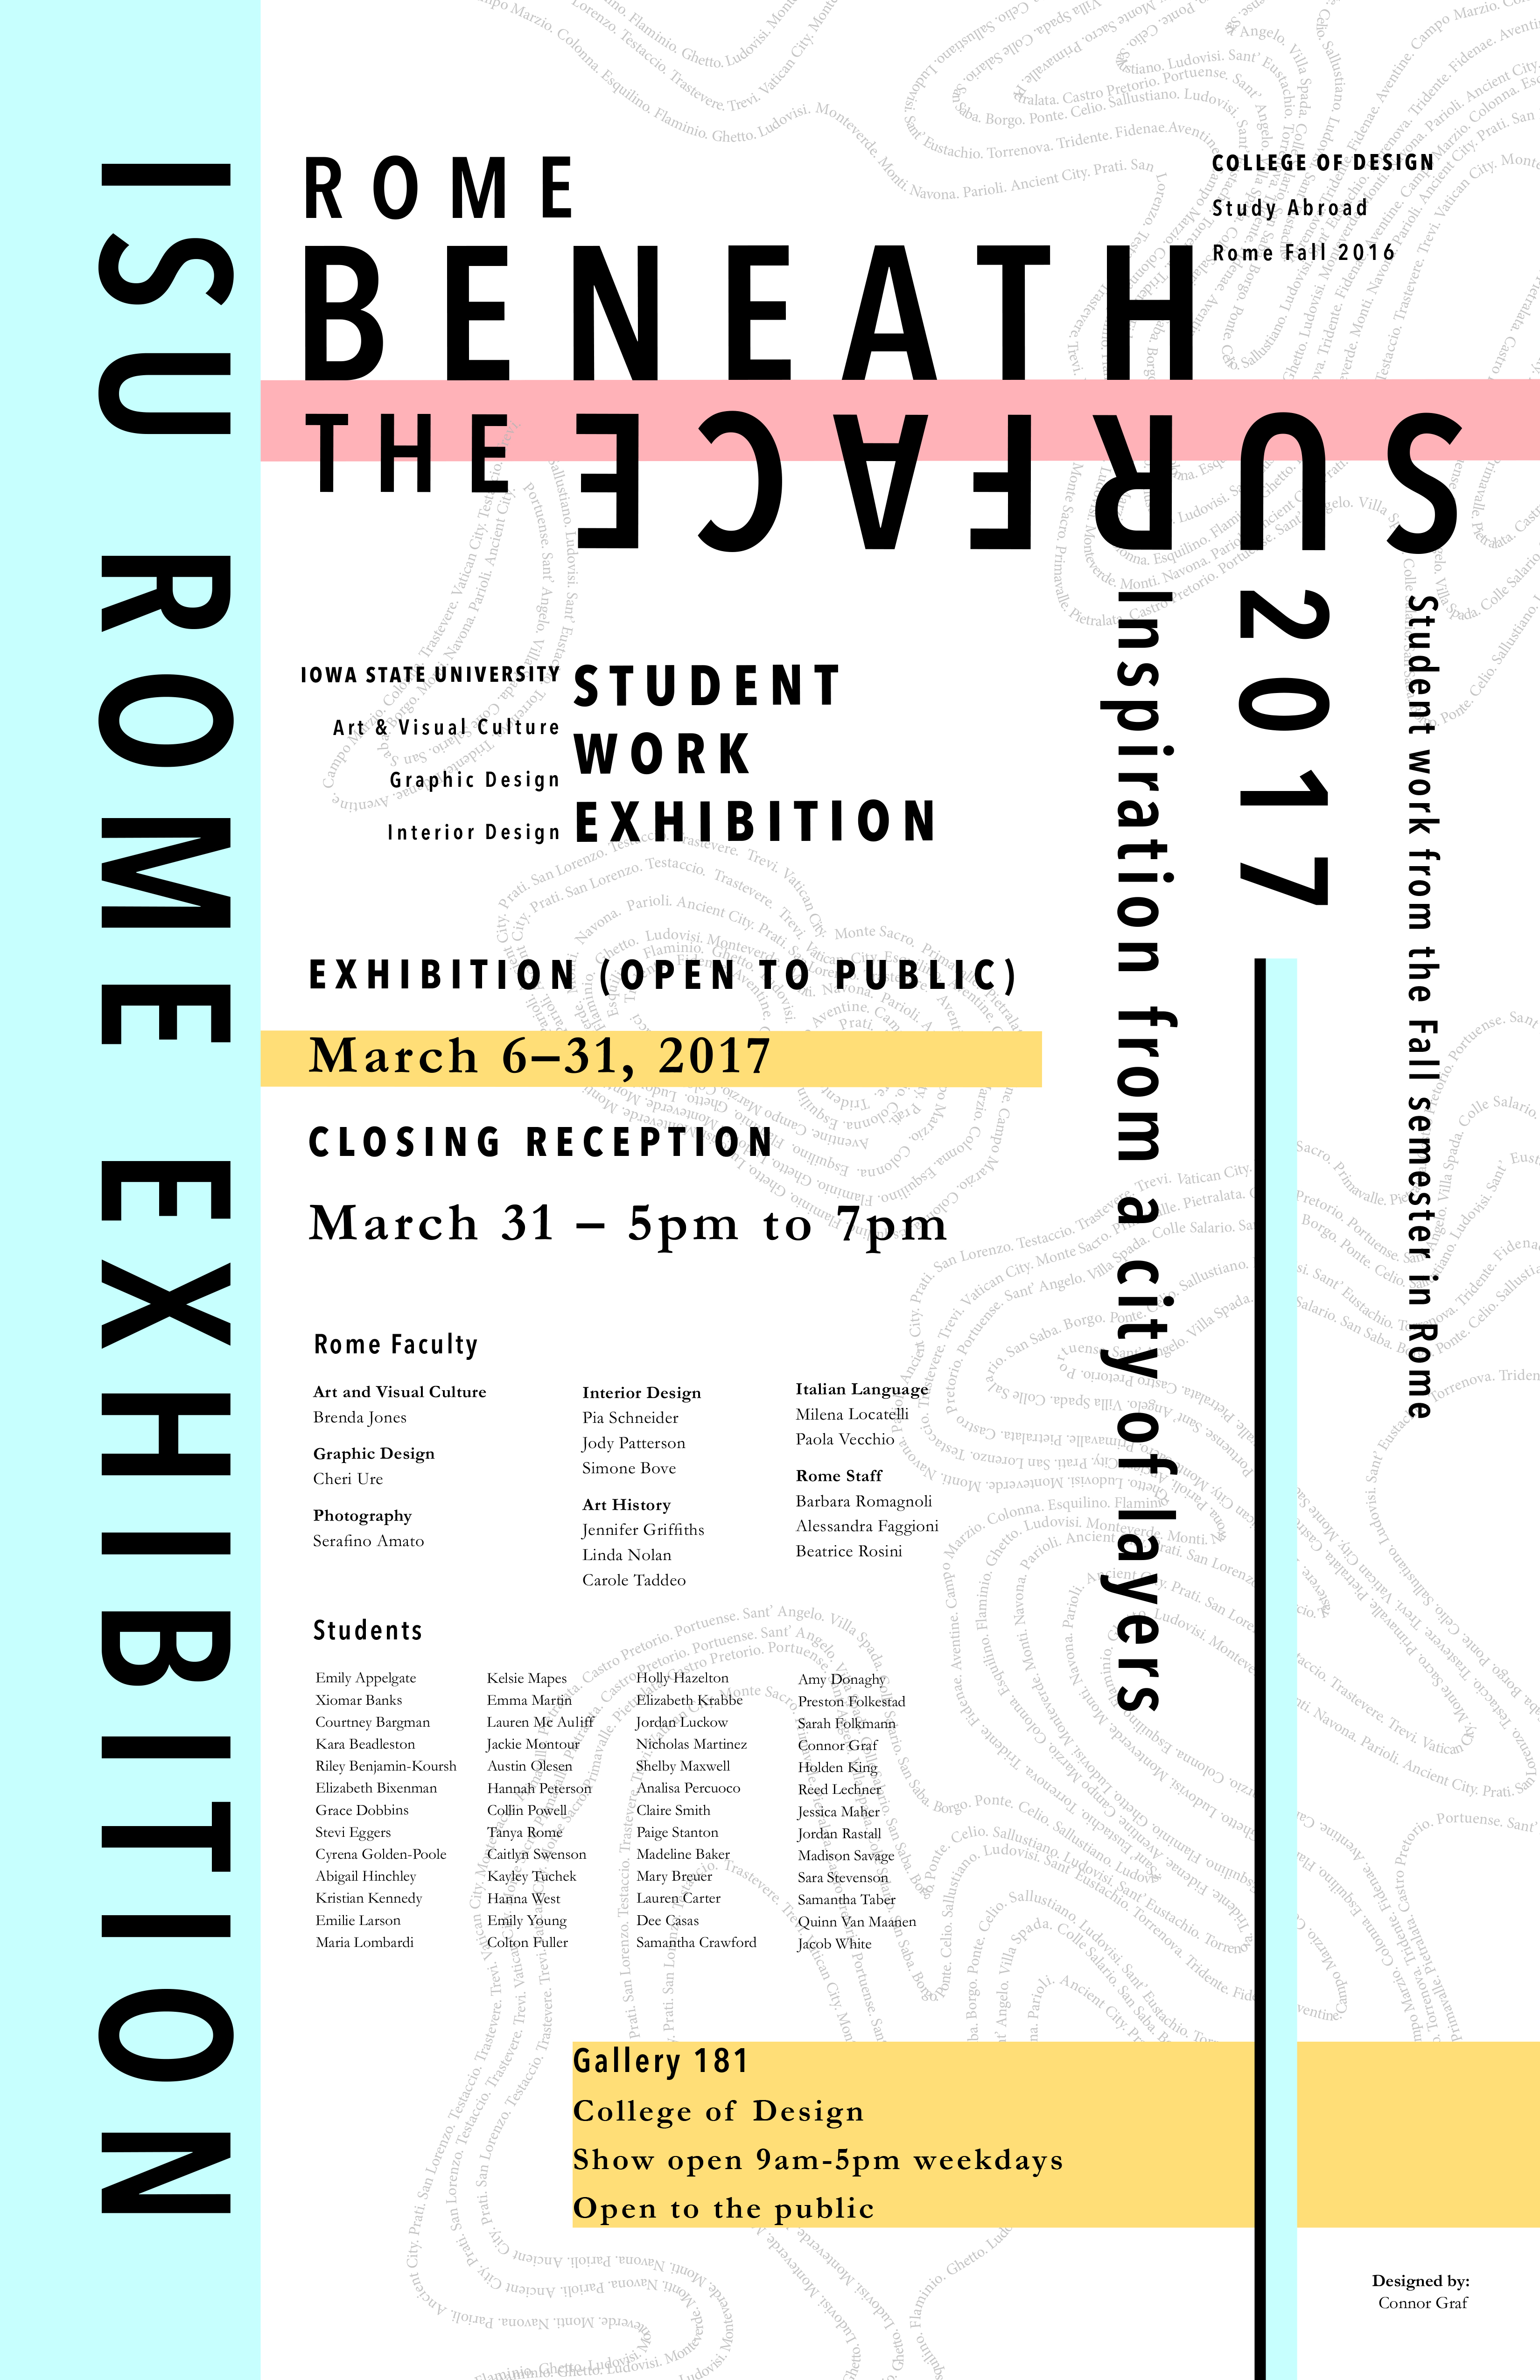 Rome Beneath the Surface Exhibition Poster